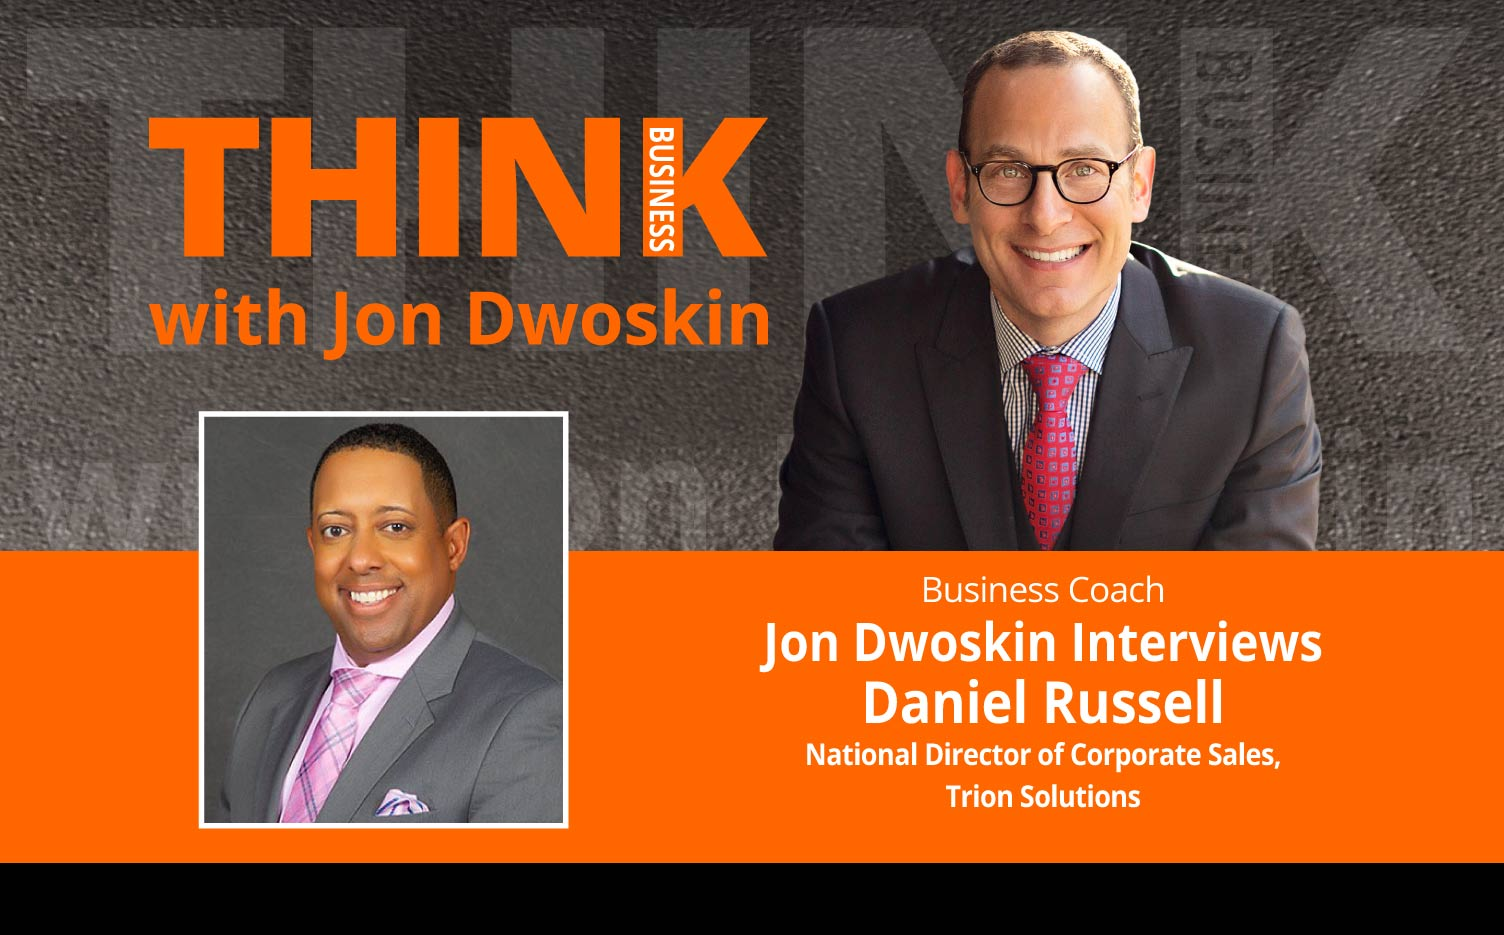 THINK Business Podcast: Jon Dwoskin Interviews Daniel Russell, National Director of Corporate Sales, Trion Solutions